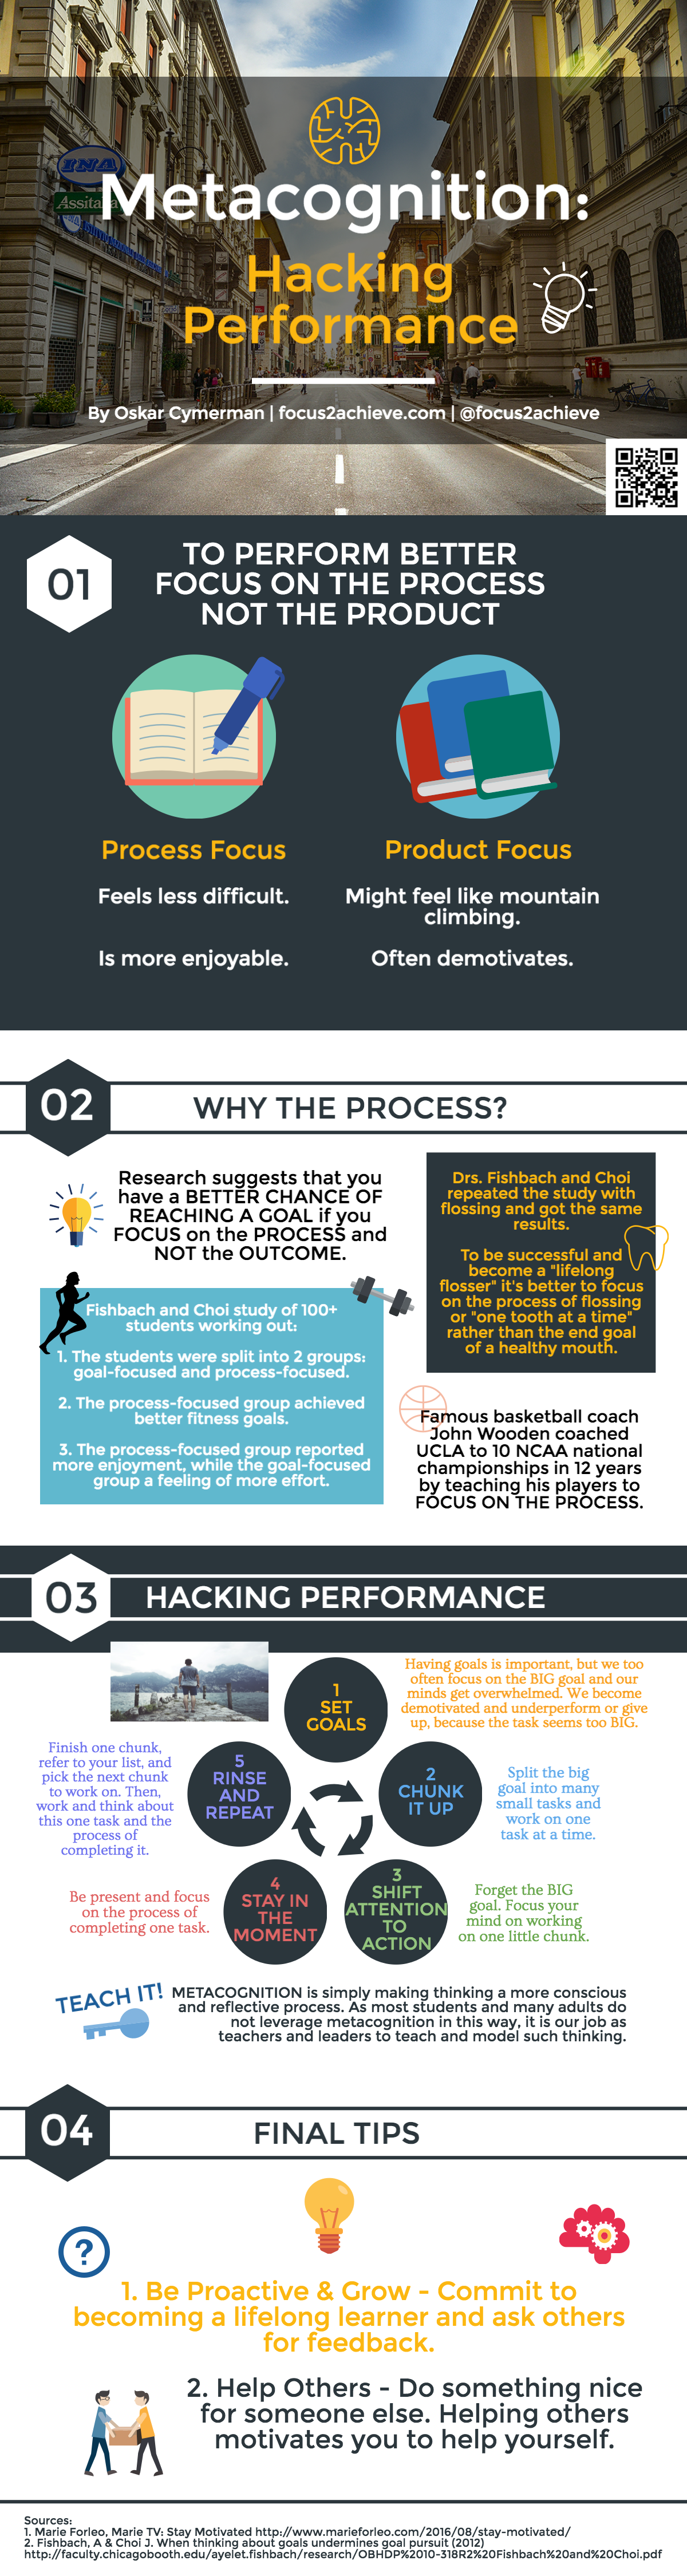 Metacognition: Hacking Performance